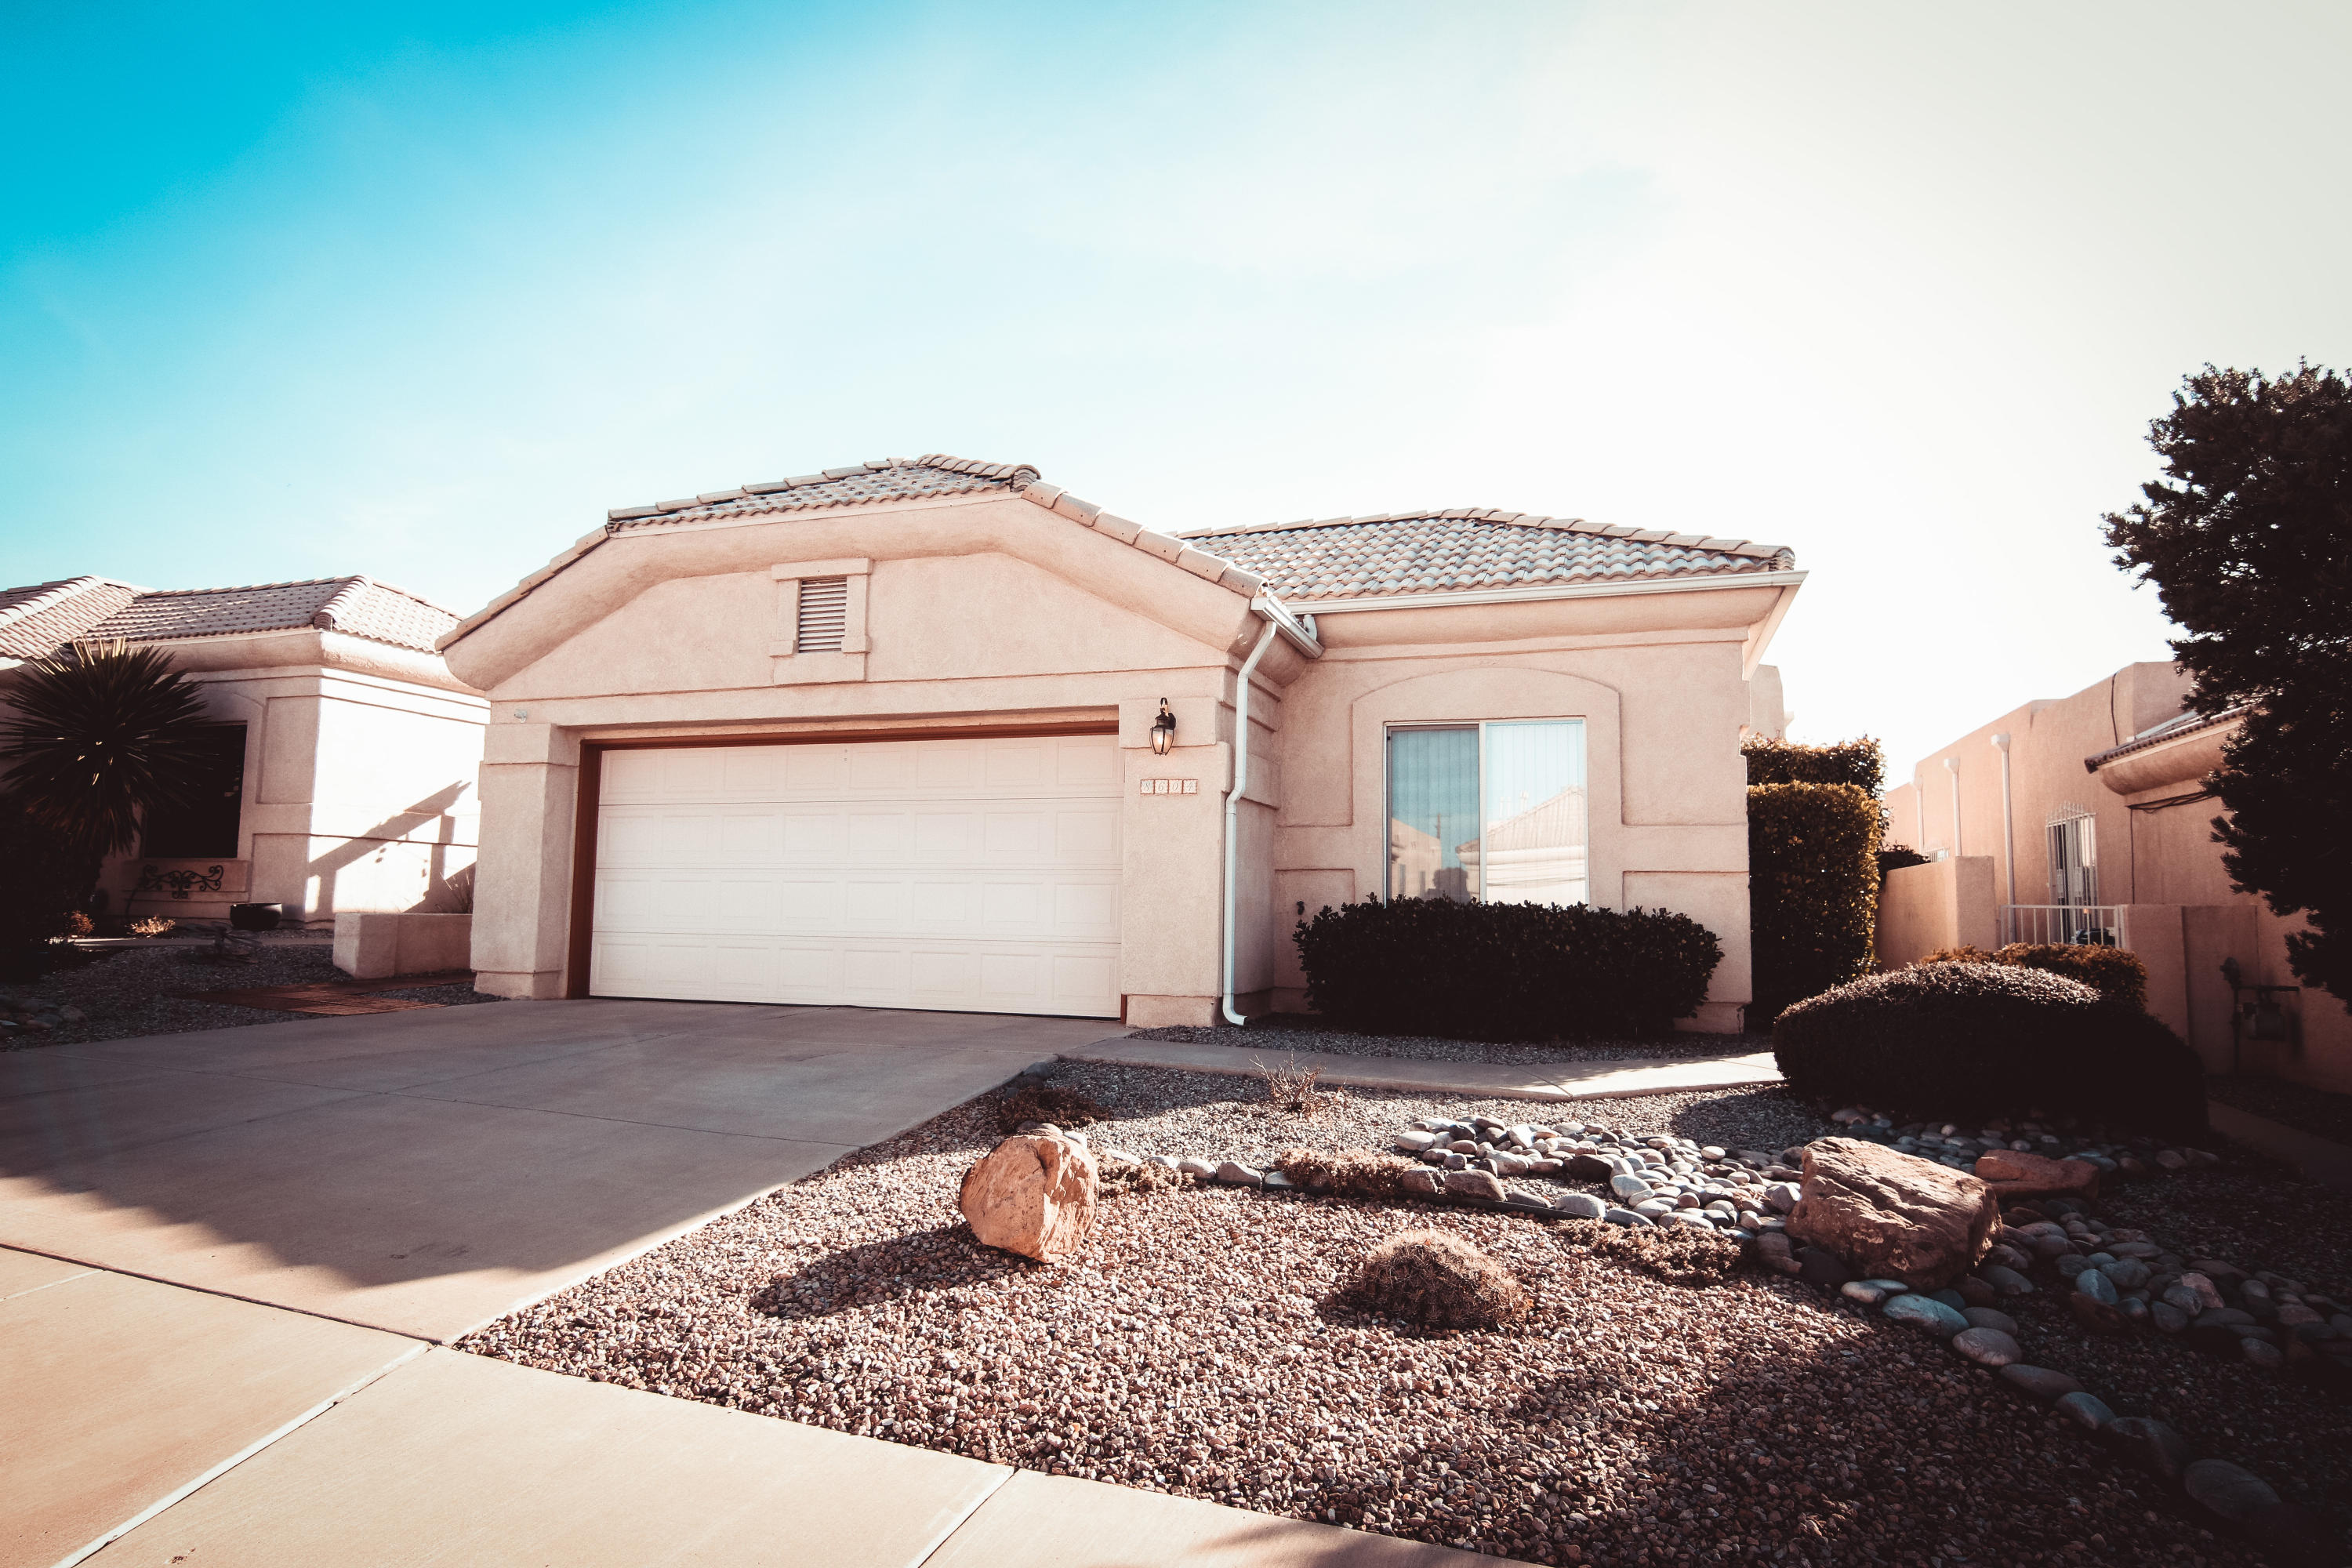 This one owner, immaculately cared for home is in such pristine condition in the La Cueva High School district! Walk into the open floorpan with plenty of natural light. The home features 3 Bedrooms and 2 Bathrooms. Tons of storage to include a large, lighted and attic. The walled & private backyard is a true paradise! The large covered patio looks incredible and looks over the beautiful landscaped yard. You will never want to leave this yard!  A one of a kind home!